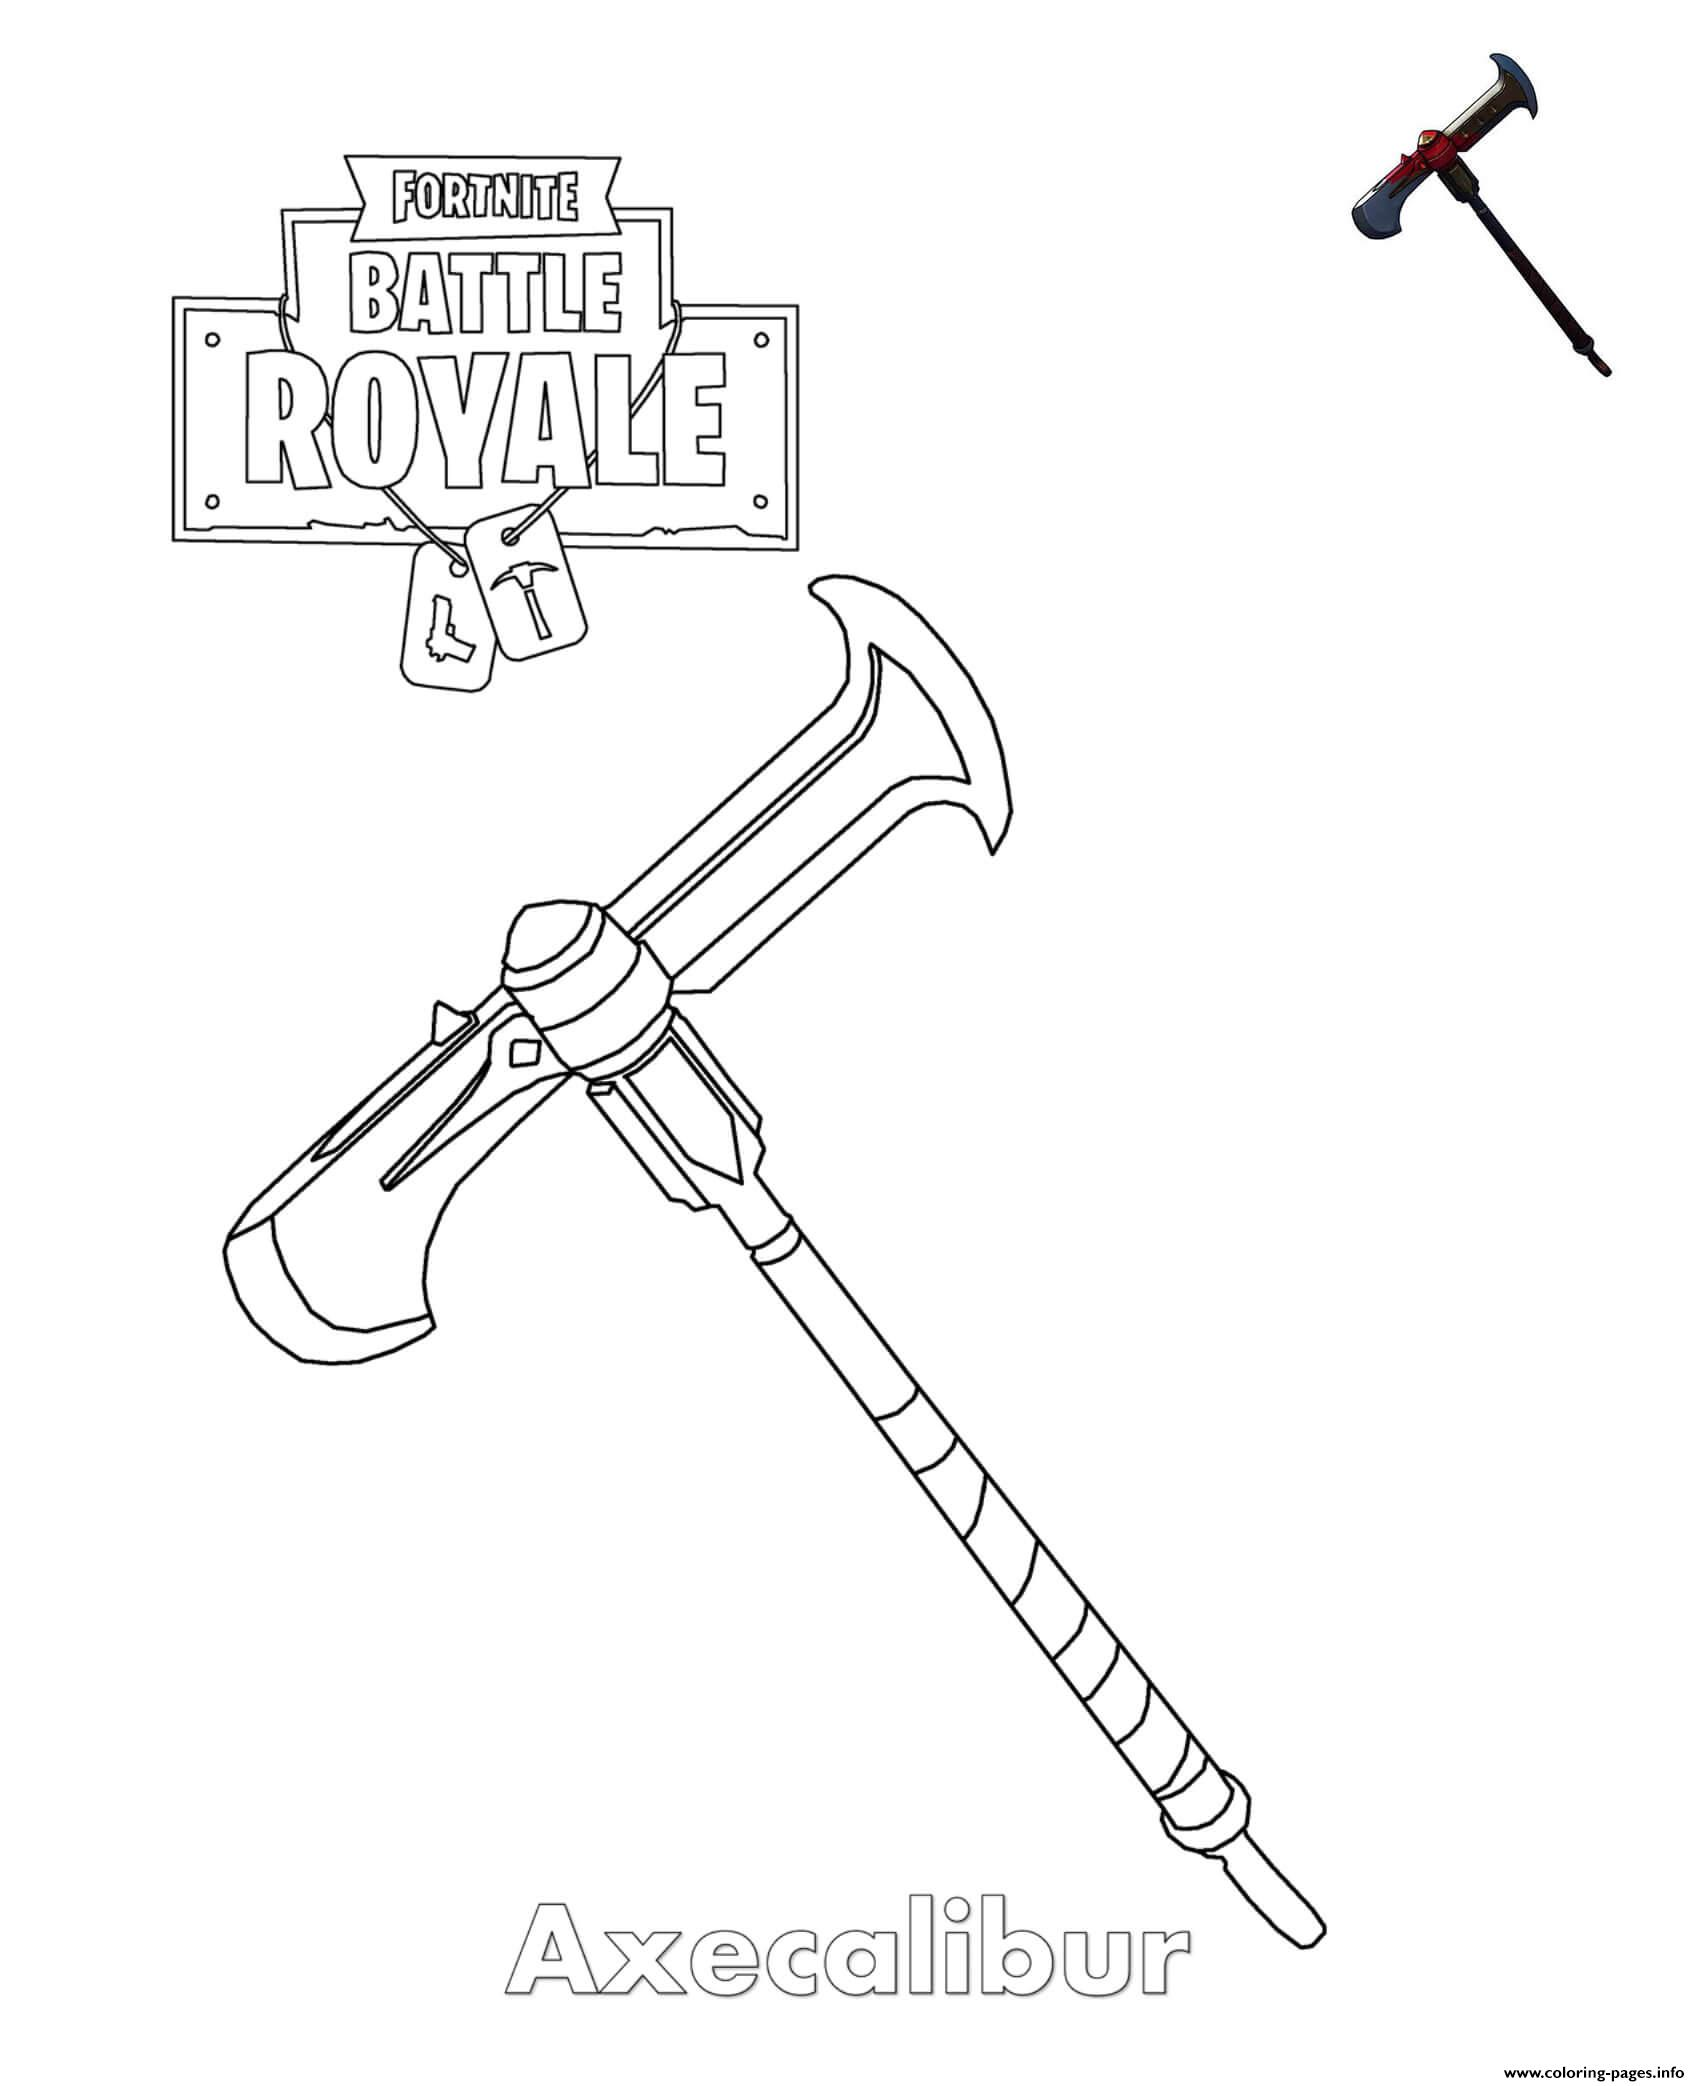 Axecalibur Fortnite Item Coloring Pages Printable